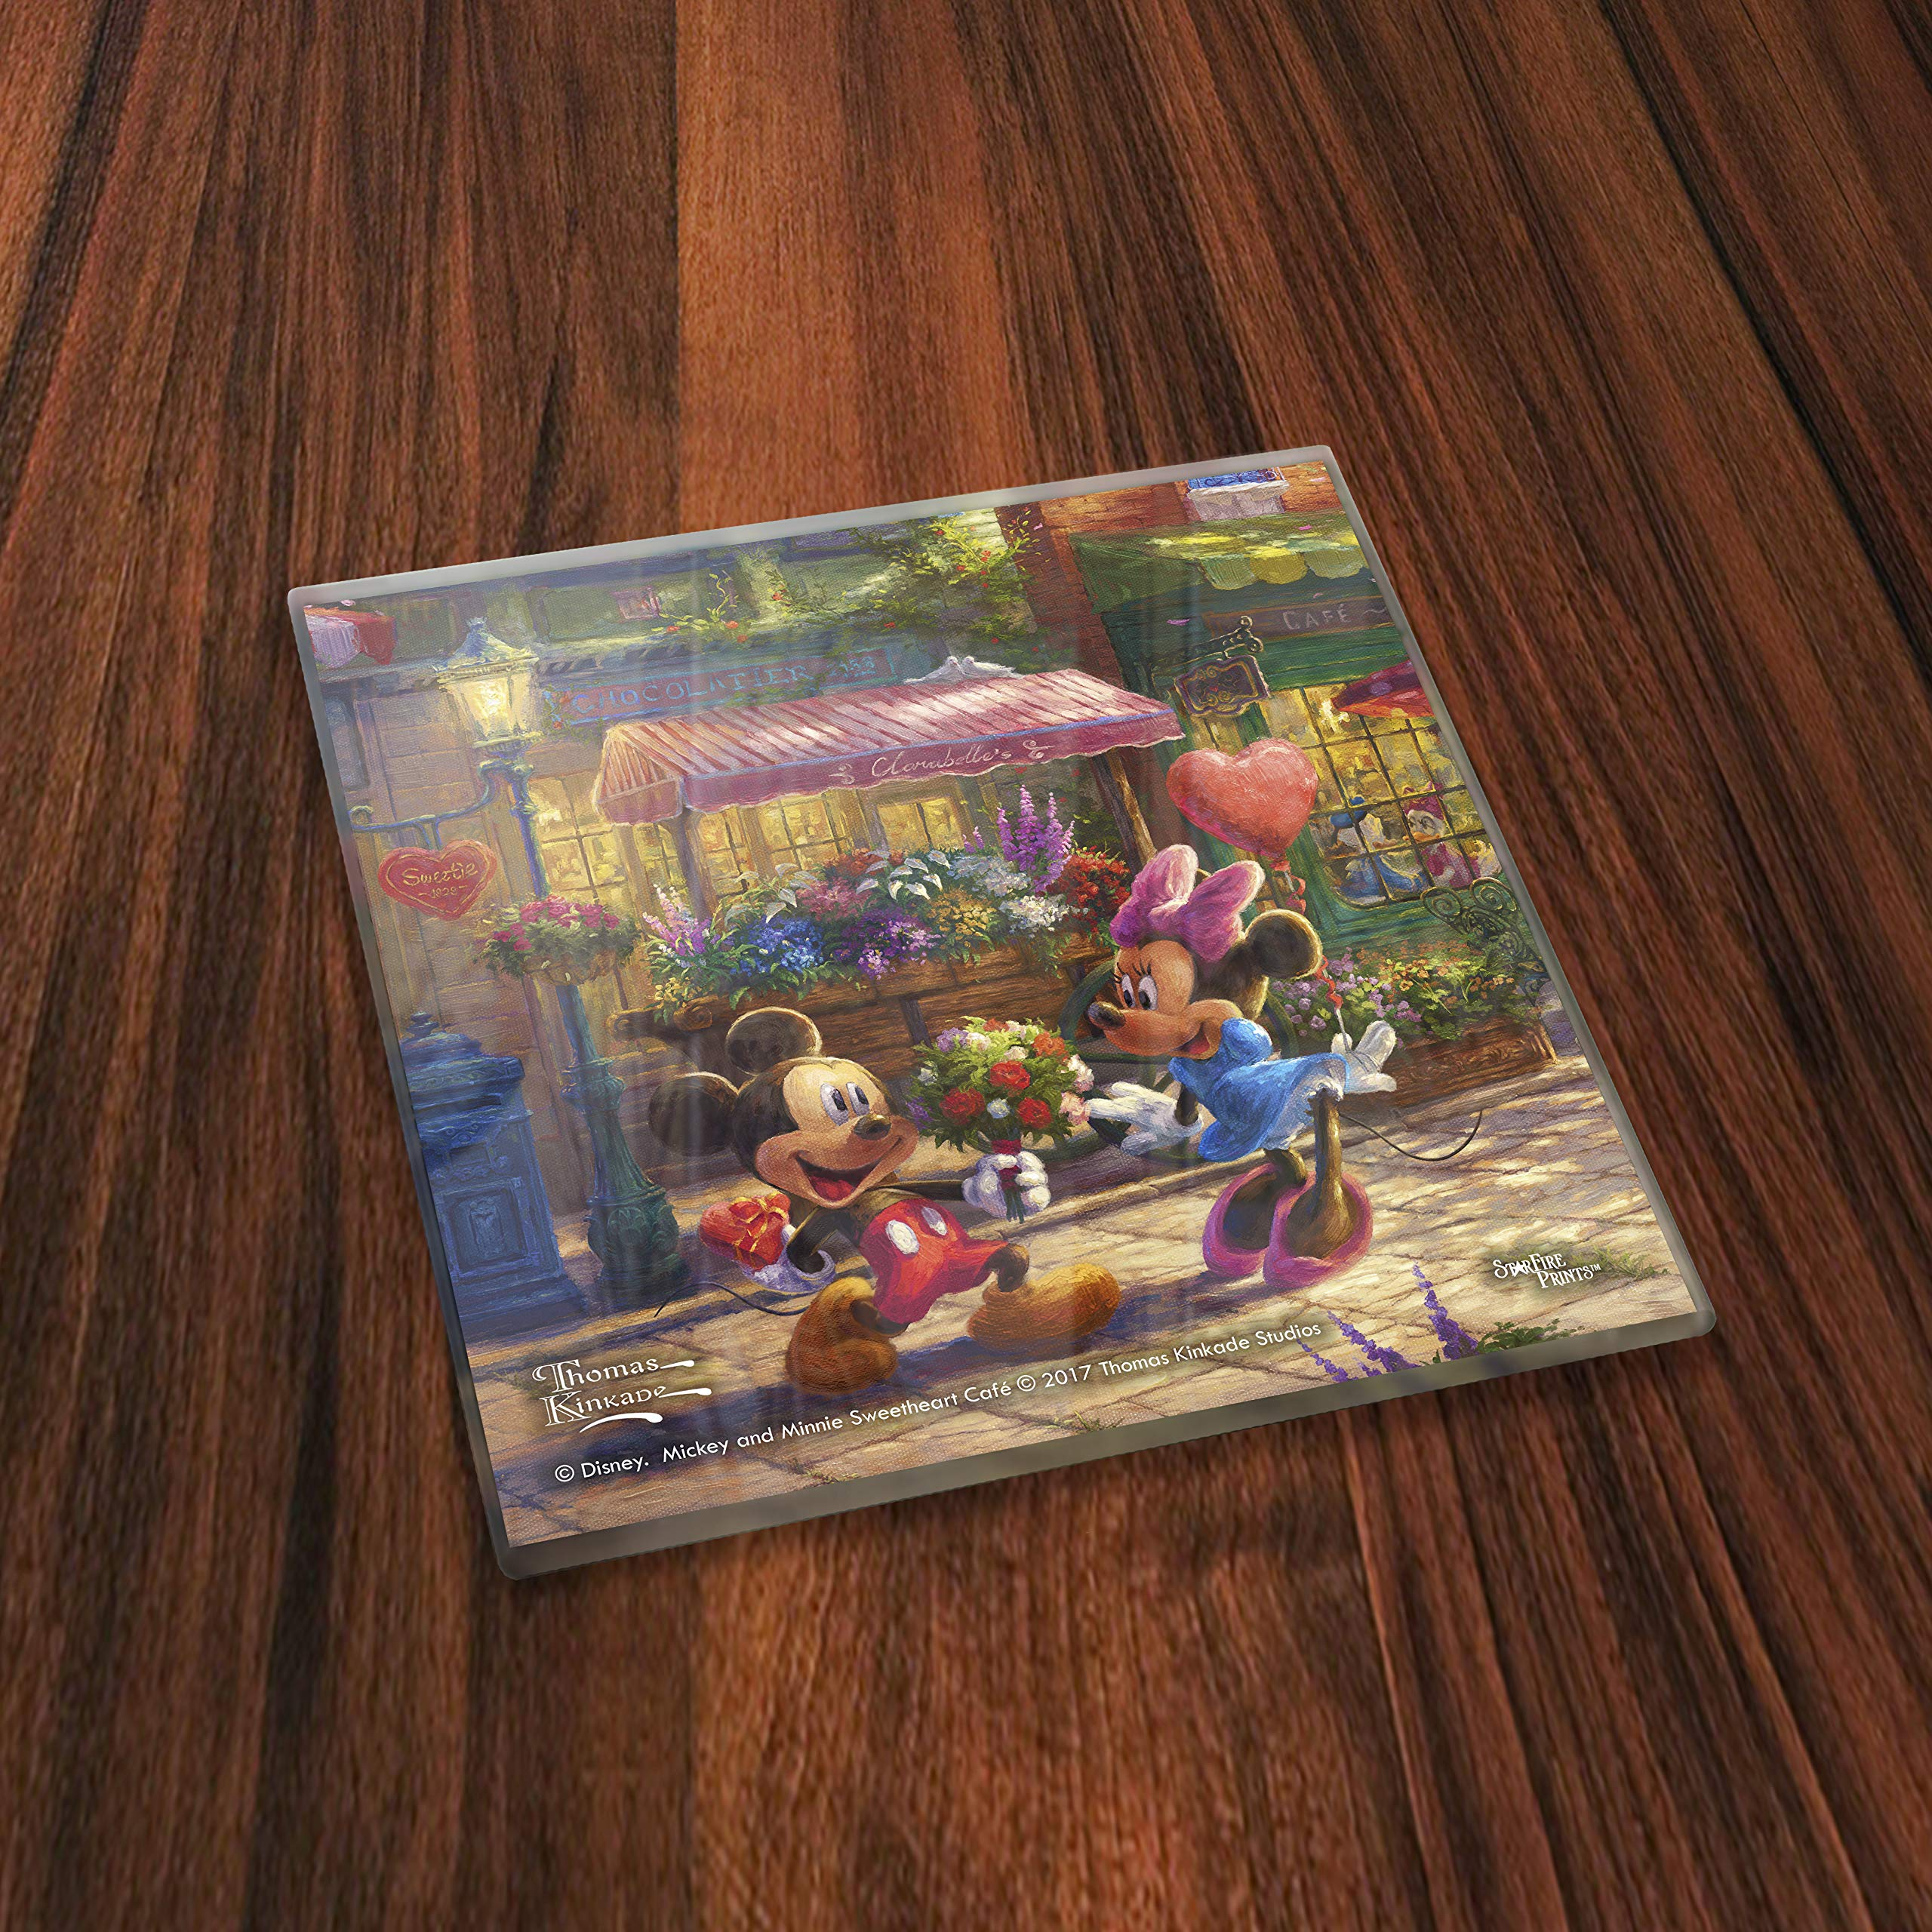 Disney Mickey and Minnie Mouse Glass Coaster - Sweetheart Collection - Thomas Kinkade - Comes With Stylish Modern Wooden Holder by Trend Setters